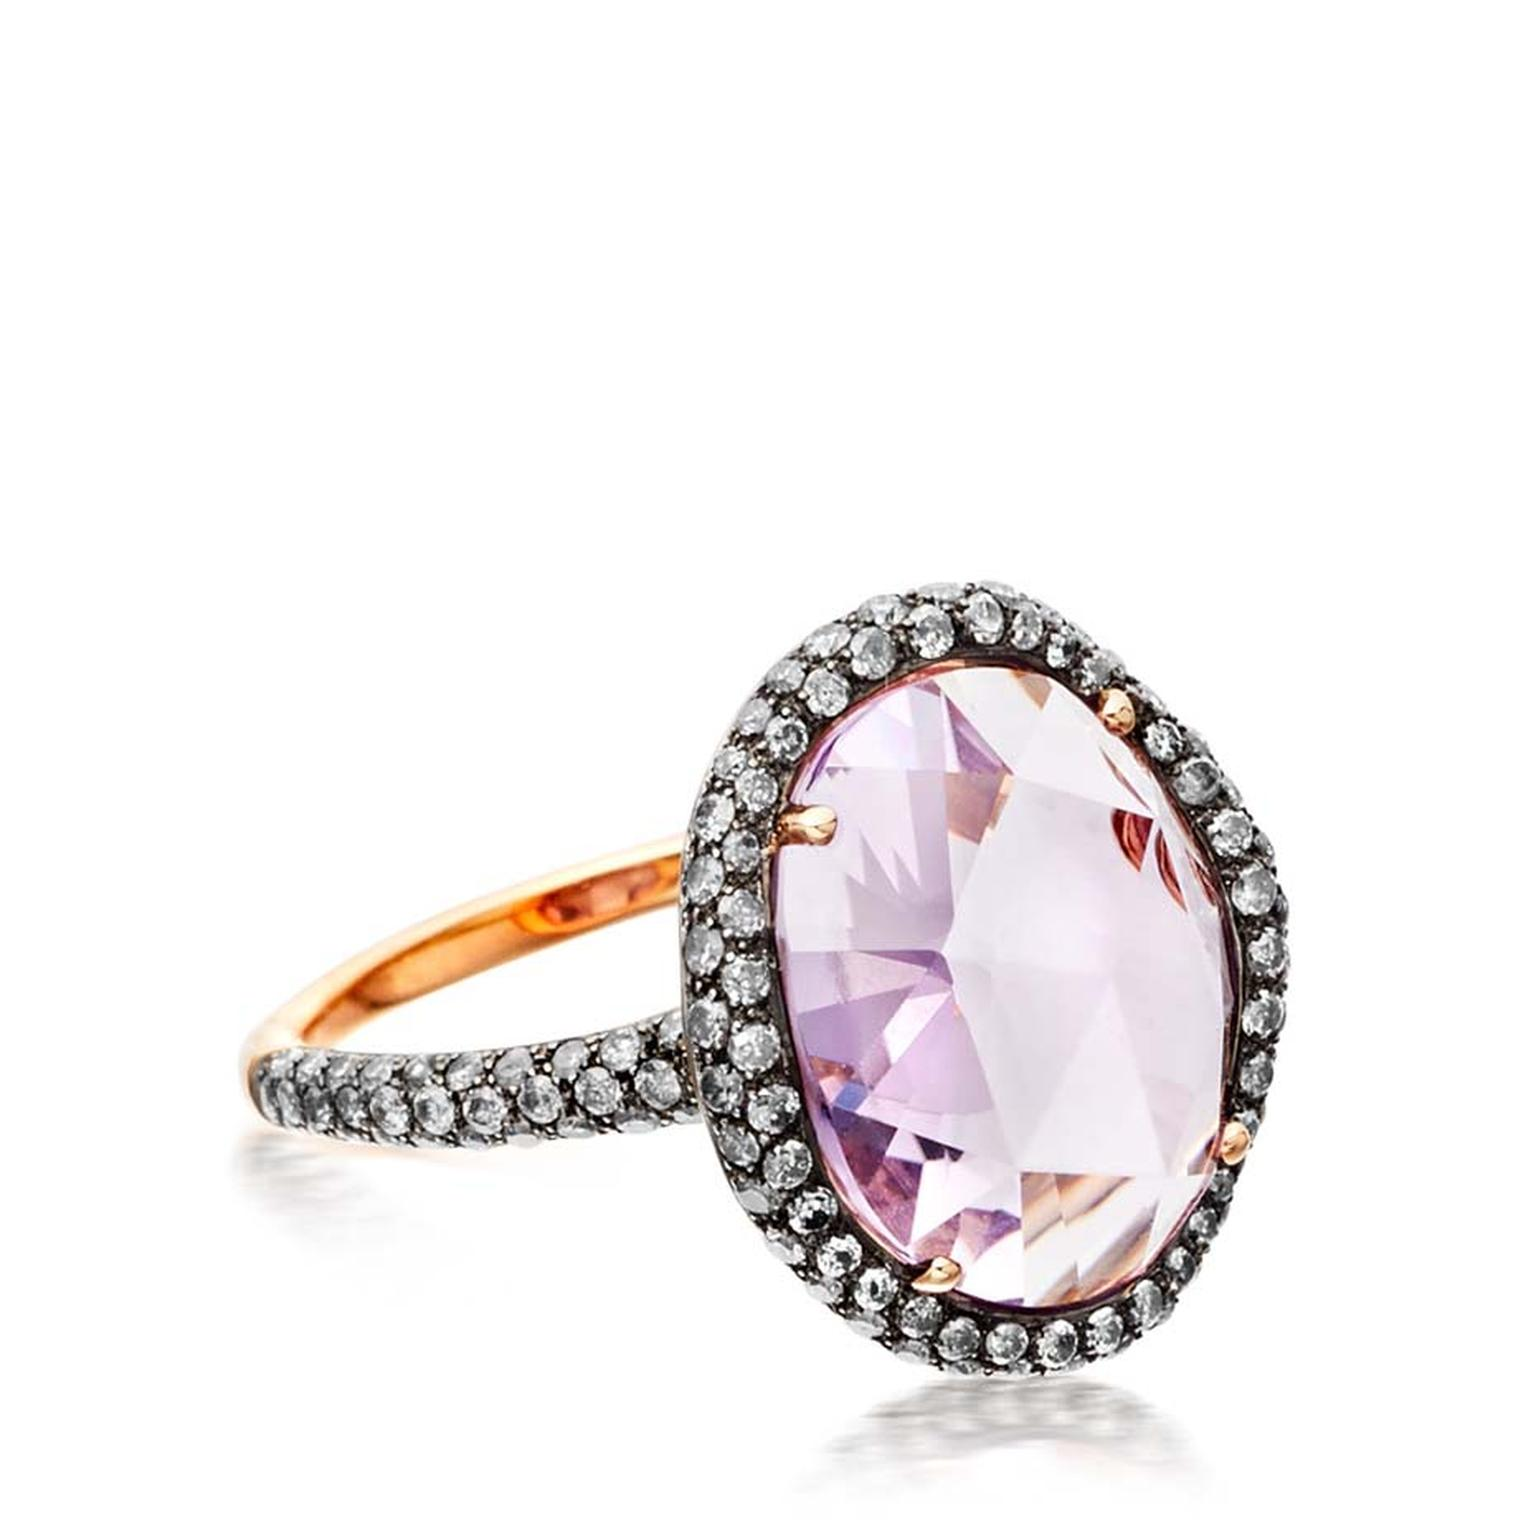 Astley Clarke medium Fao ring featuring a central Rose de France amethyst and molten pavé diamonds